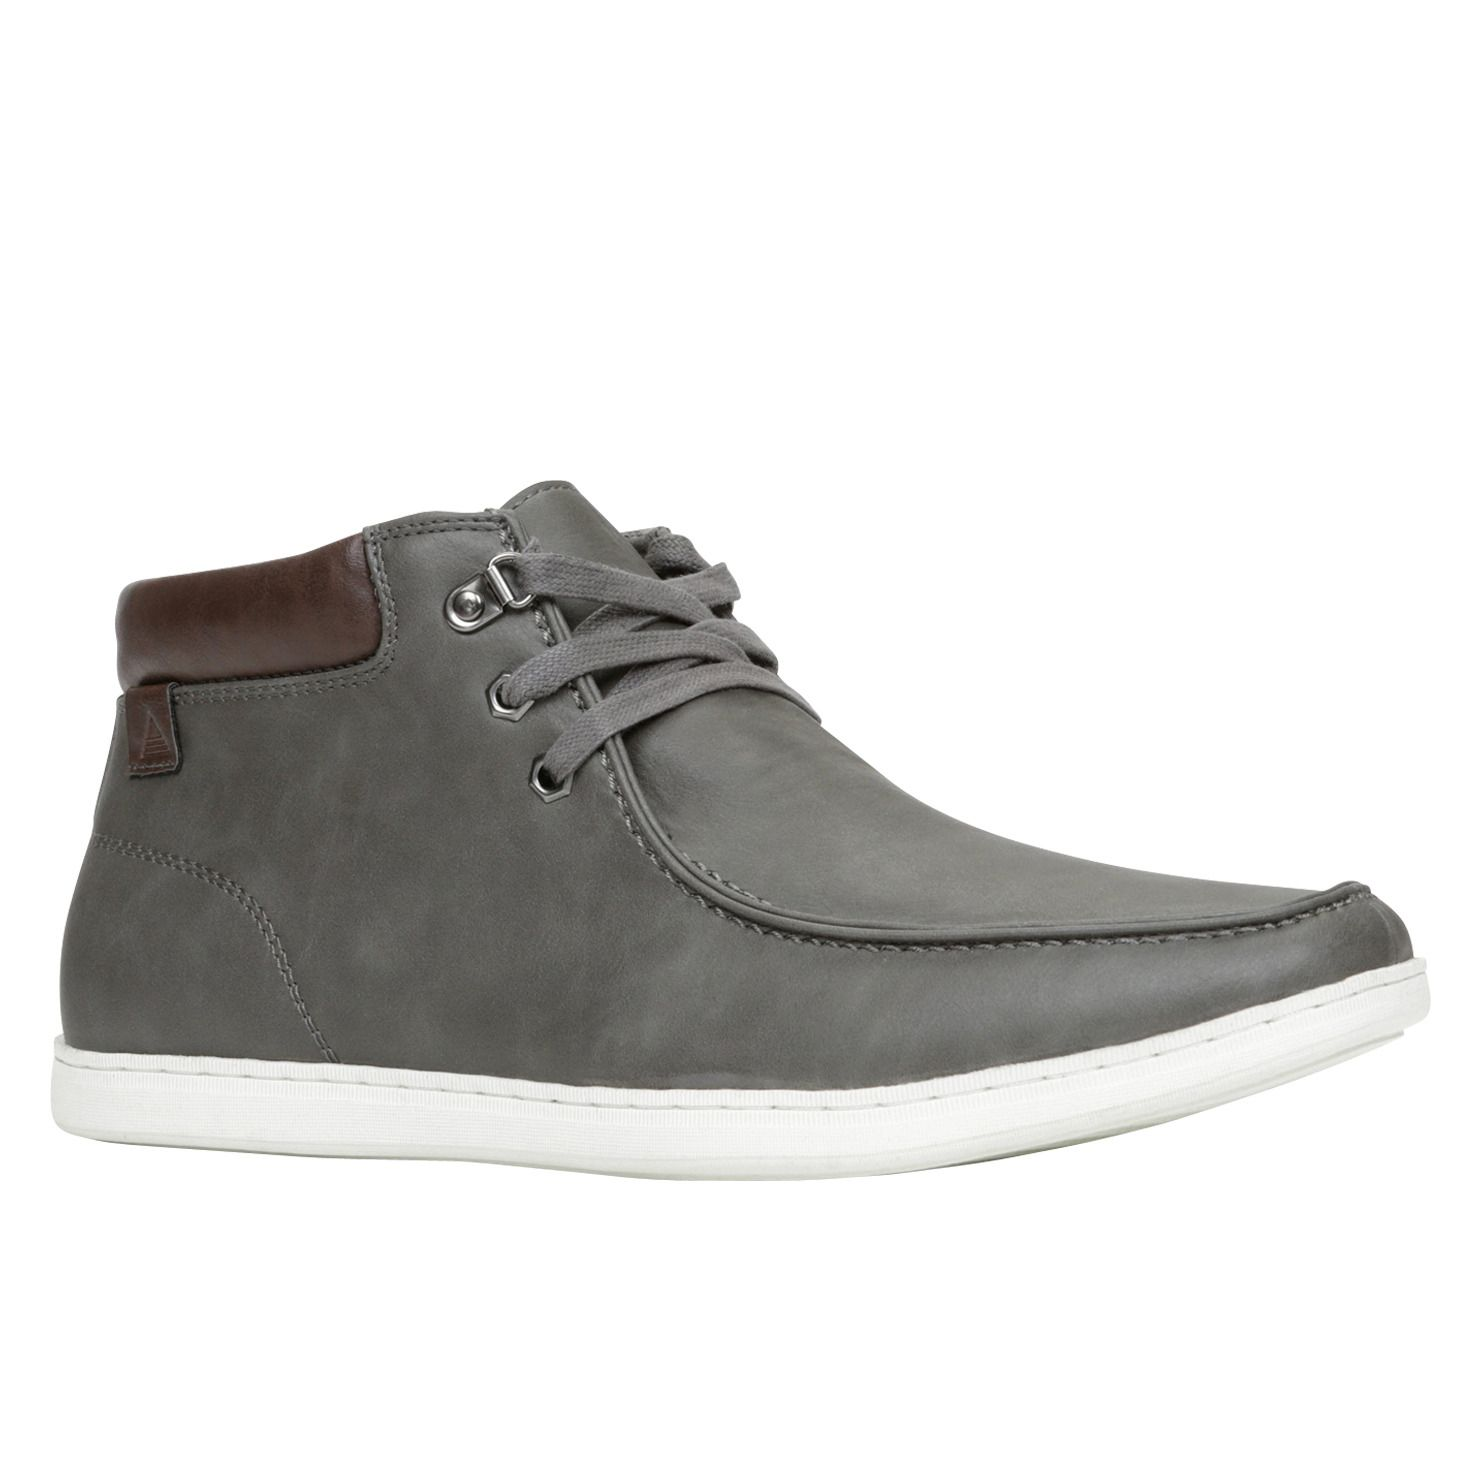 men's casual lace-ups shoes for sale at